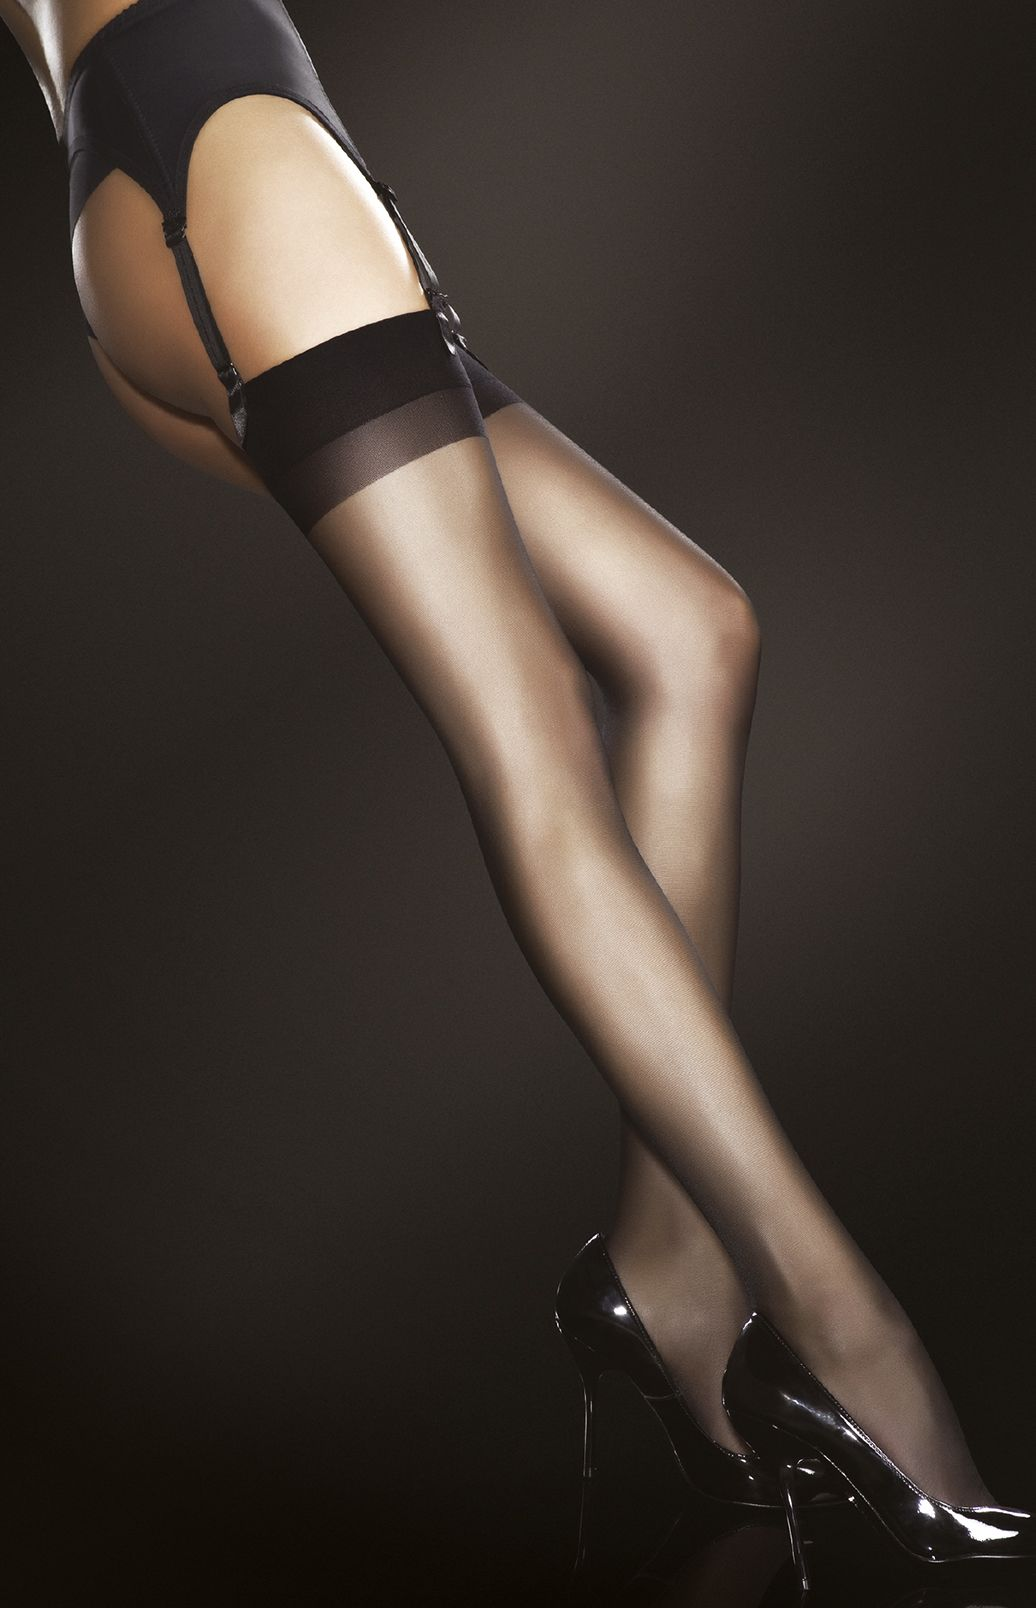 Pity, Suspenders stockings and heels